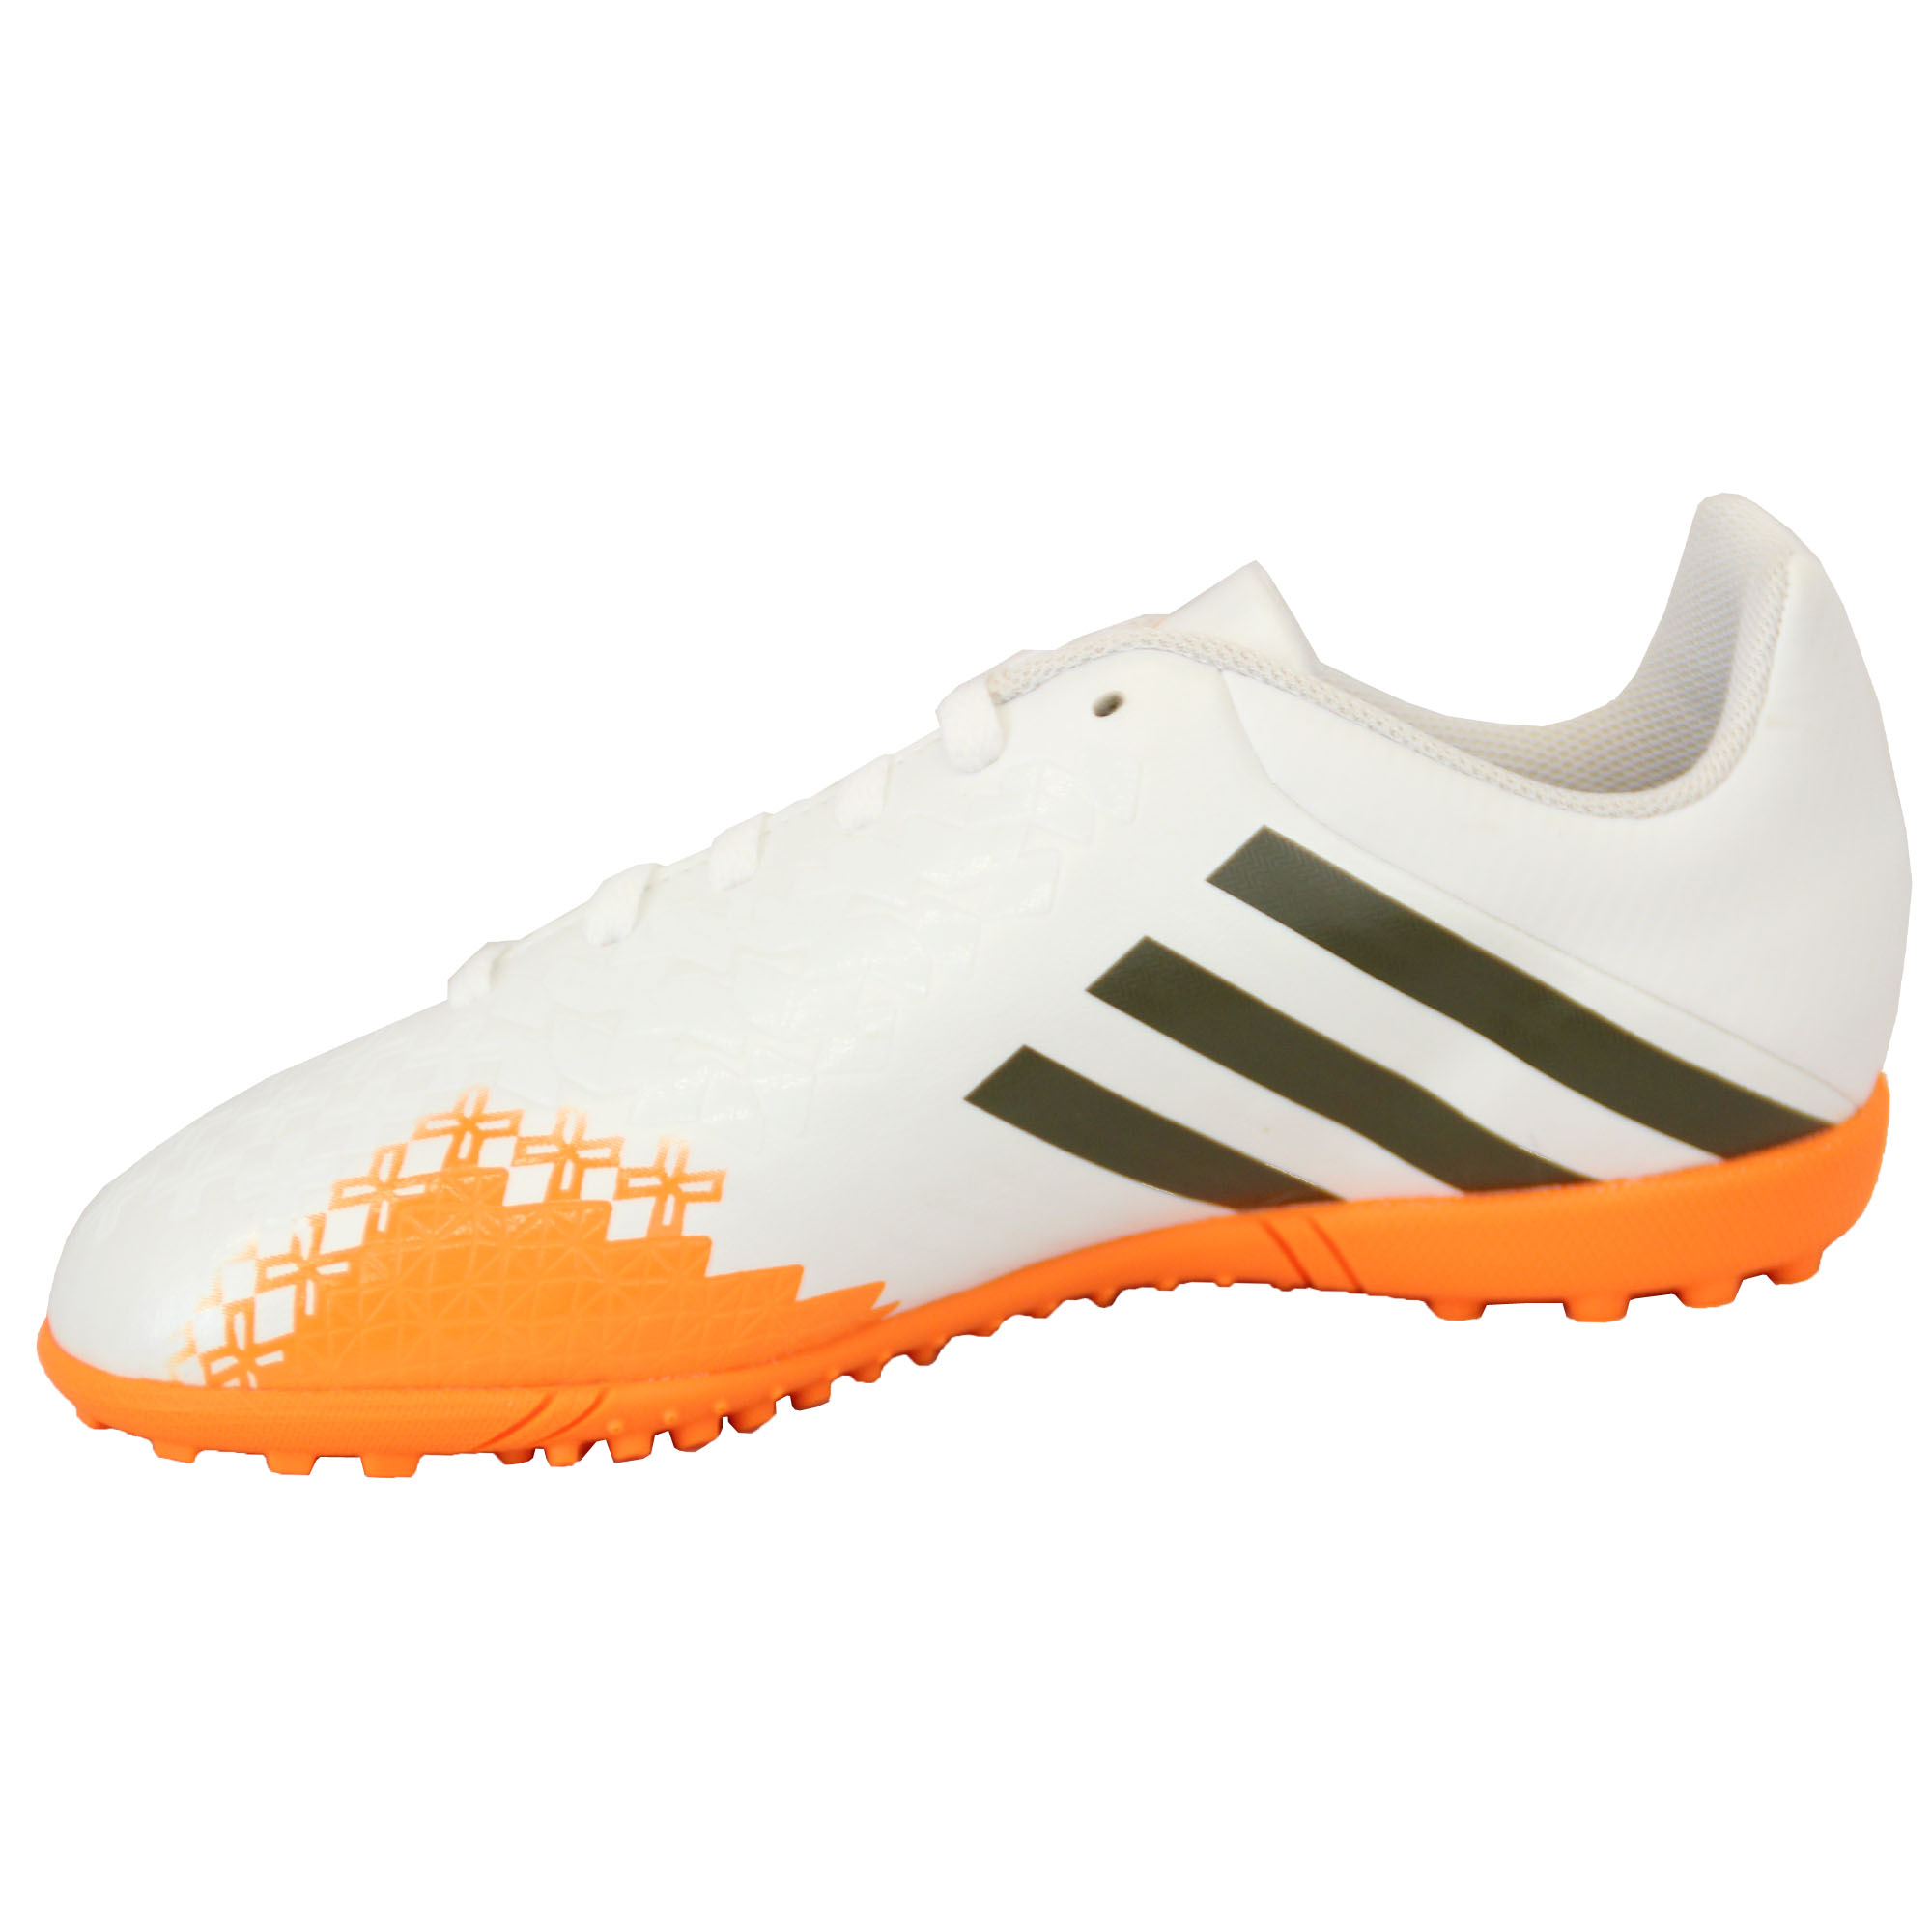 Boys-ADIDAS-Trainers-Kids-Football-Soccer-Astro-Turf-Shoes-Lace-Up-Neon-Youth thumbnail 22